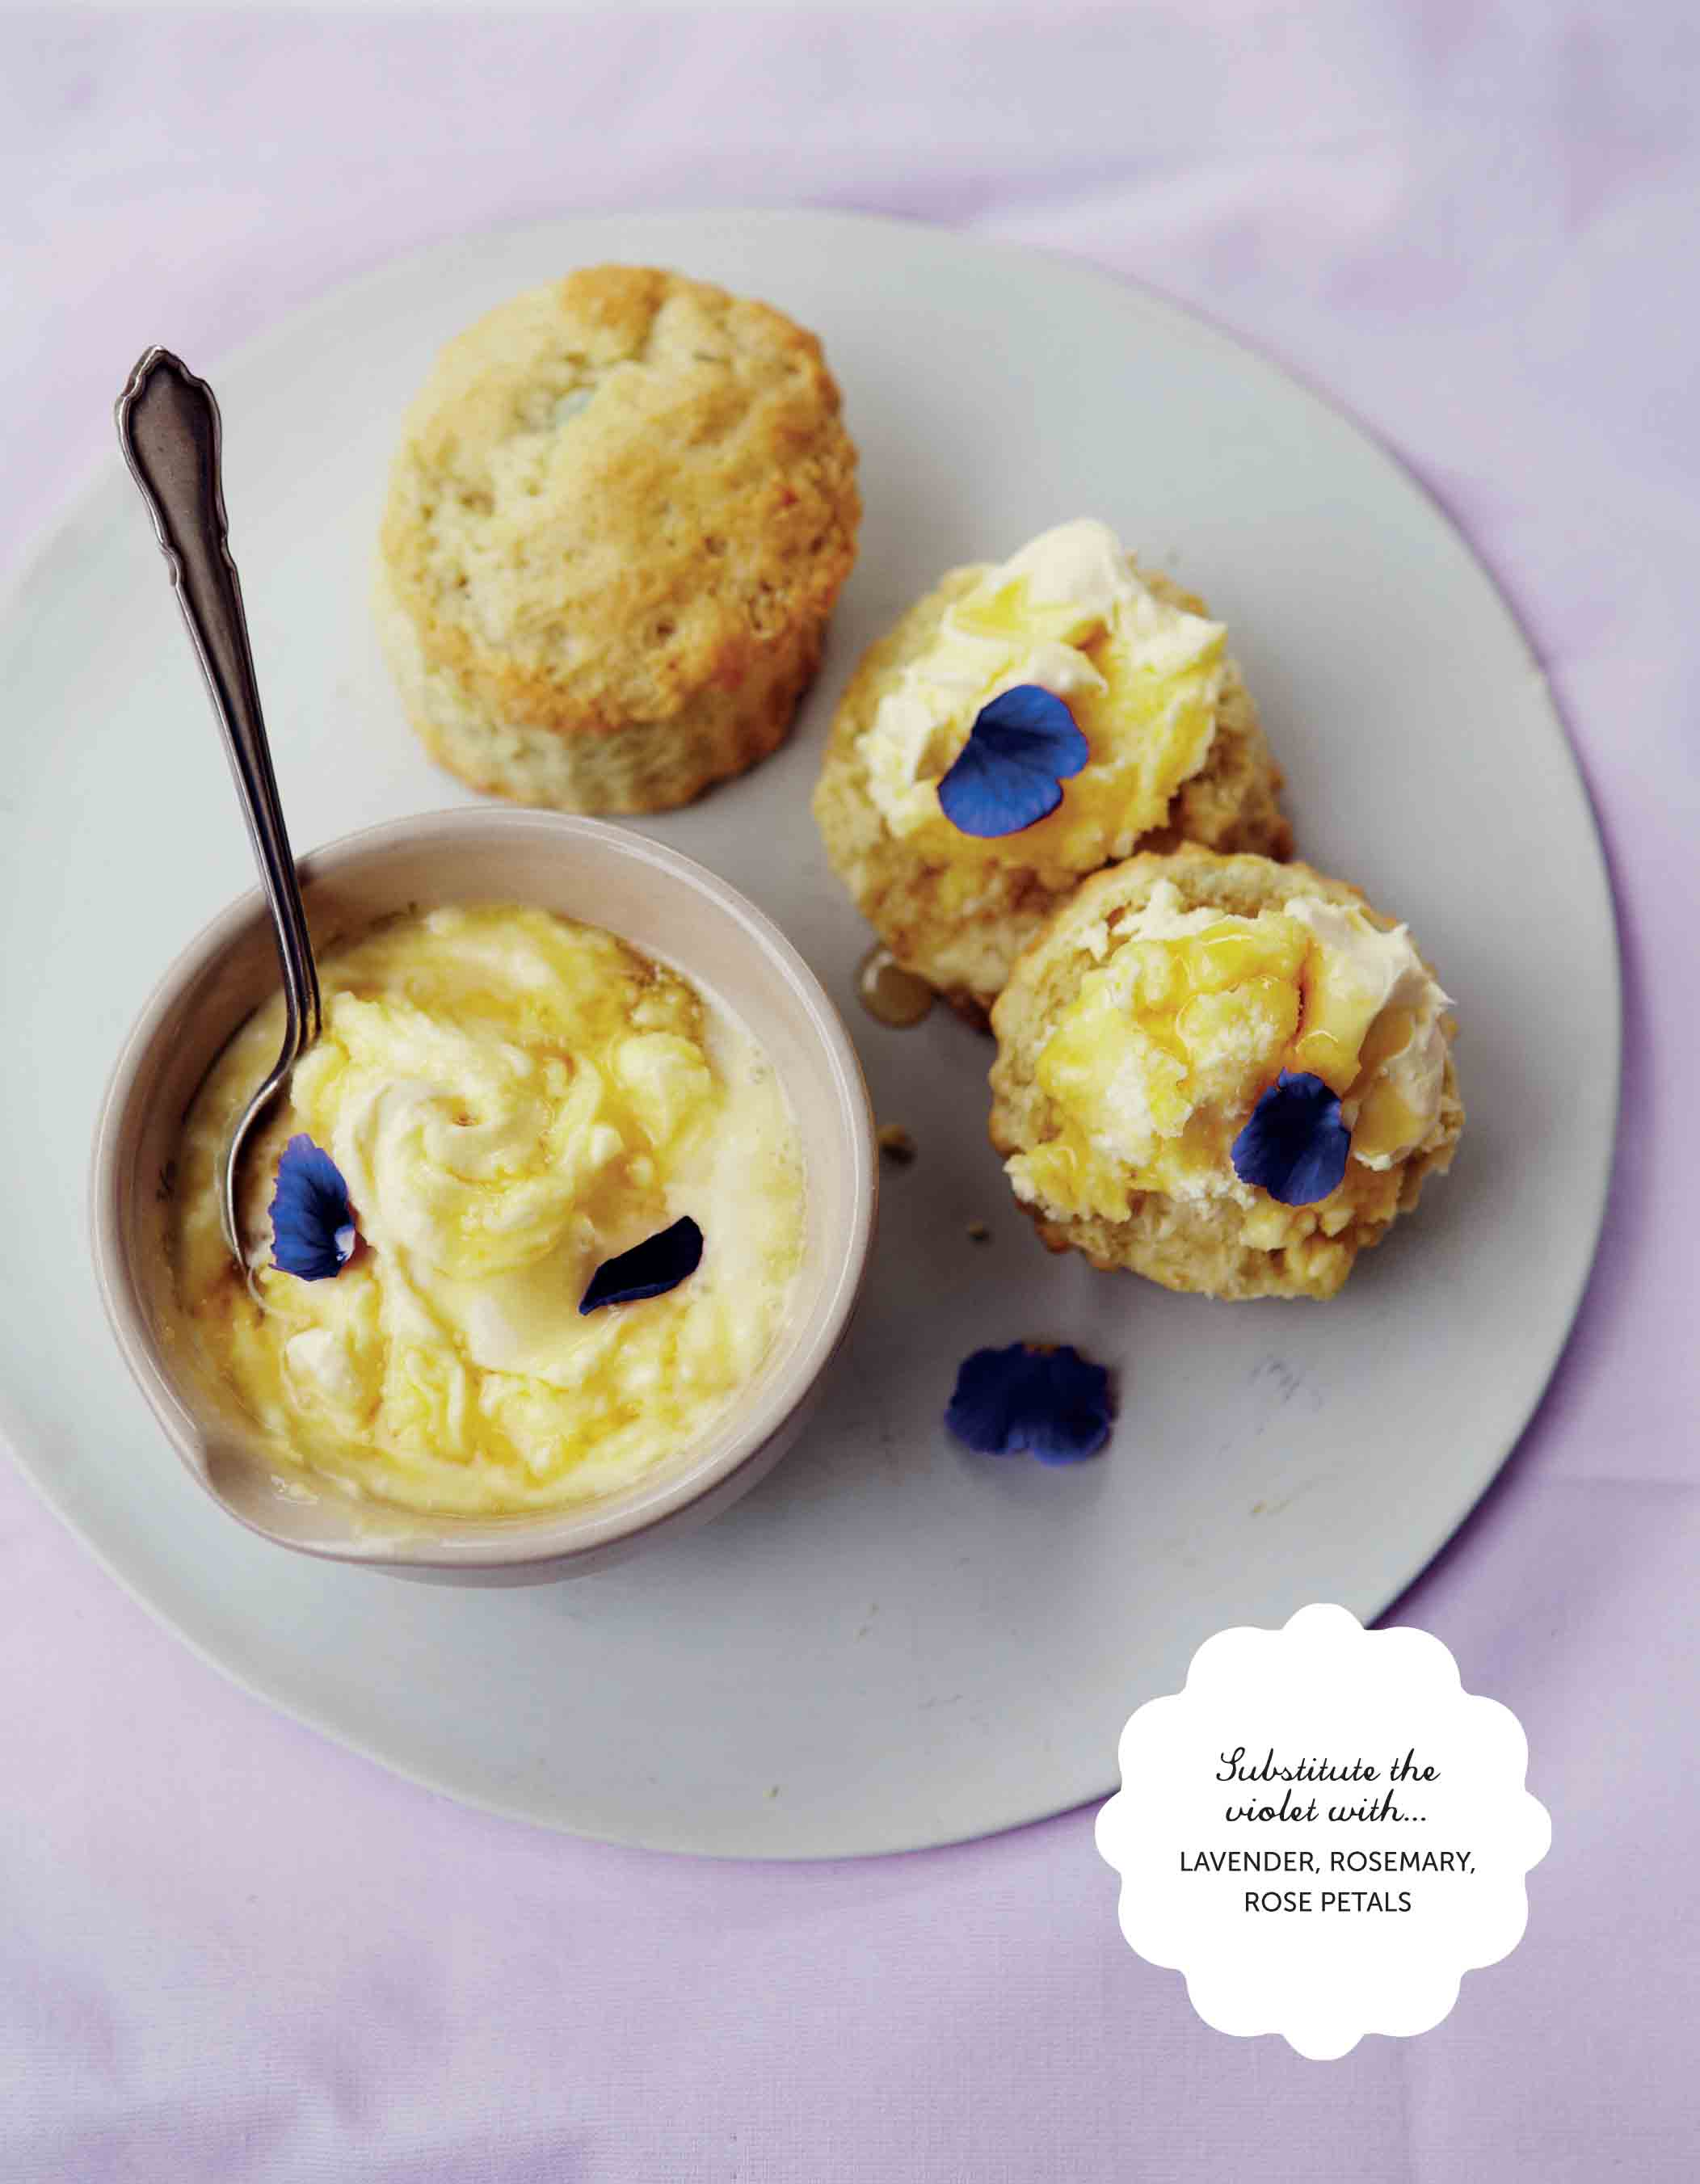 Violet scones with honeyed cream